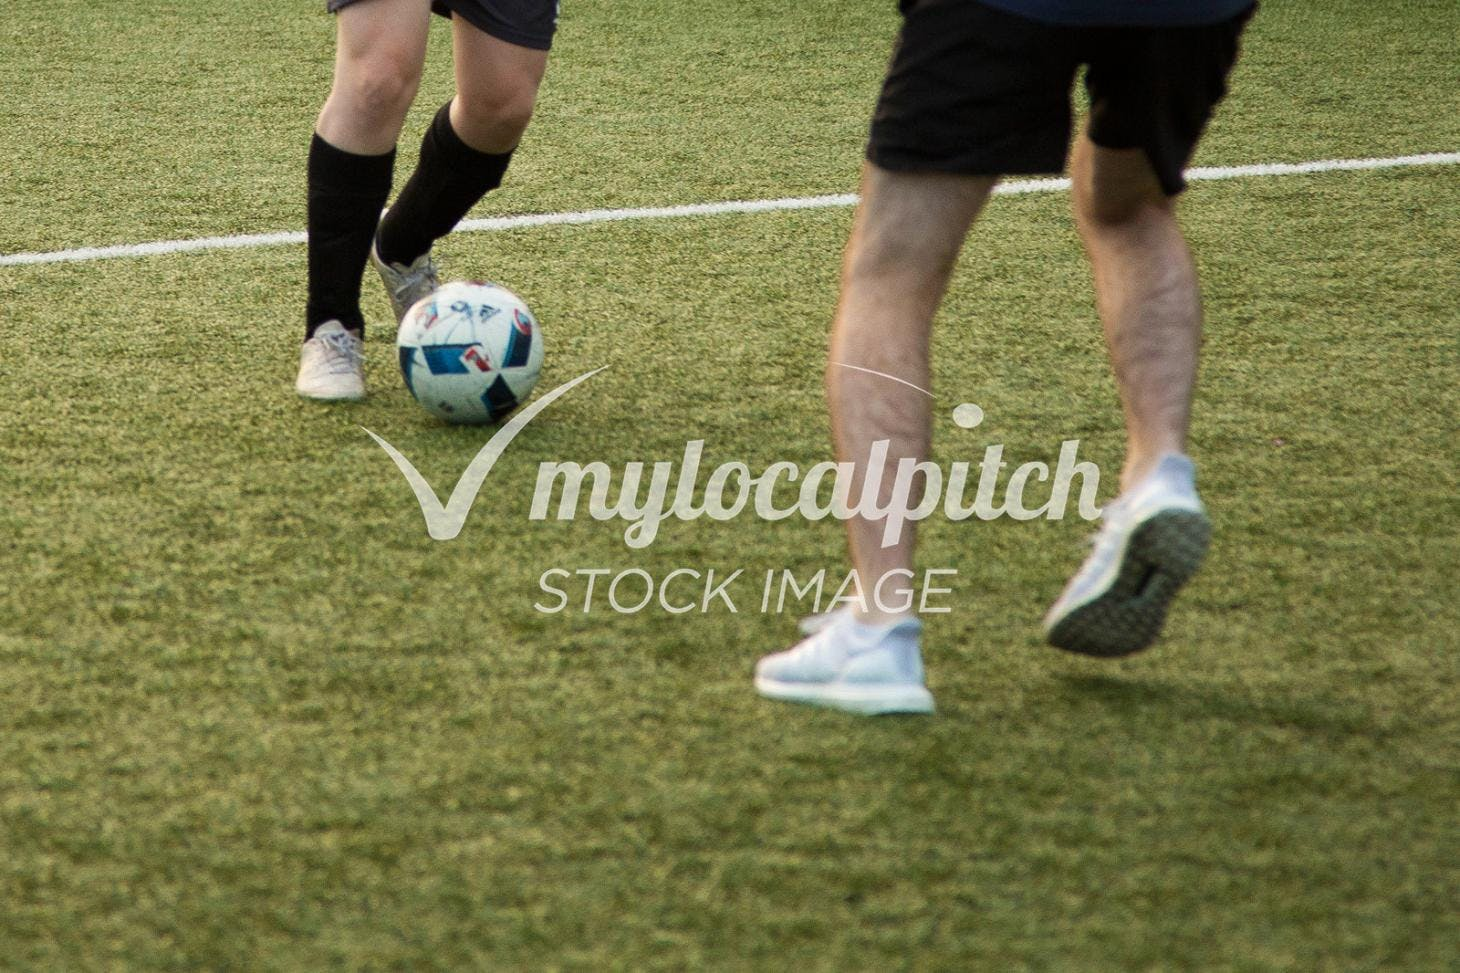 Kingsmeadow Fitness & Athletic Centre 11 a side | Grass football pitch